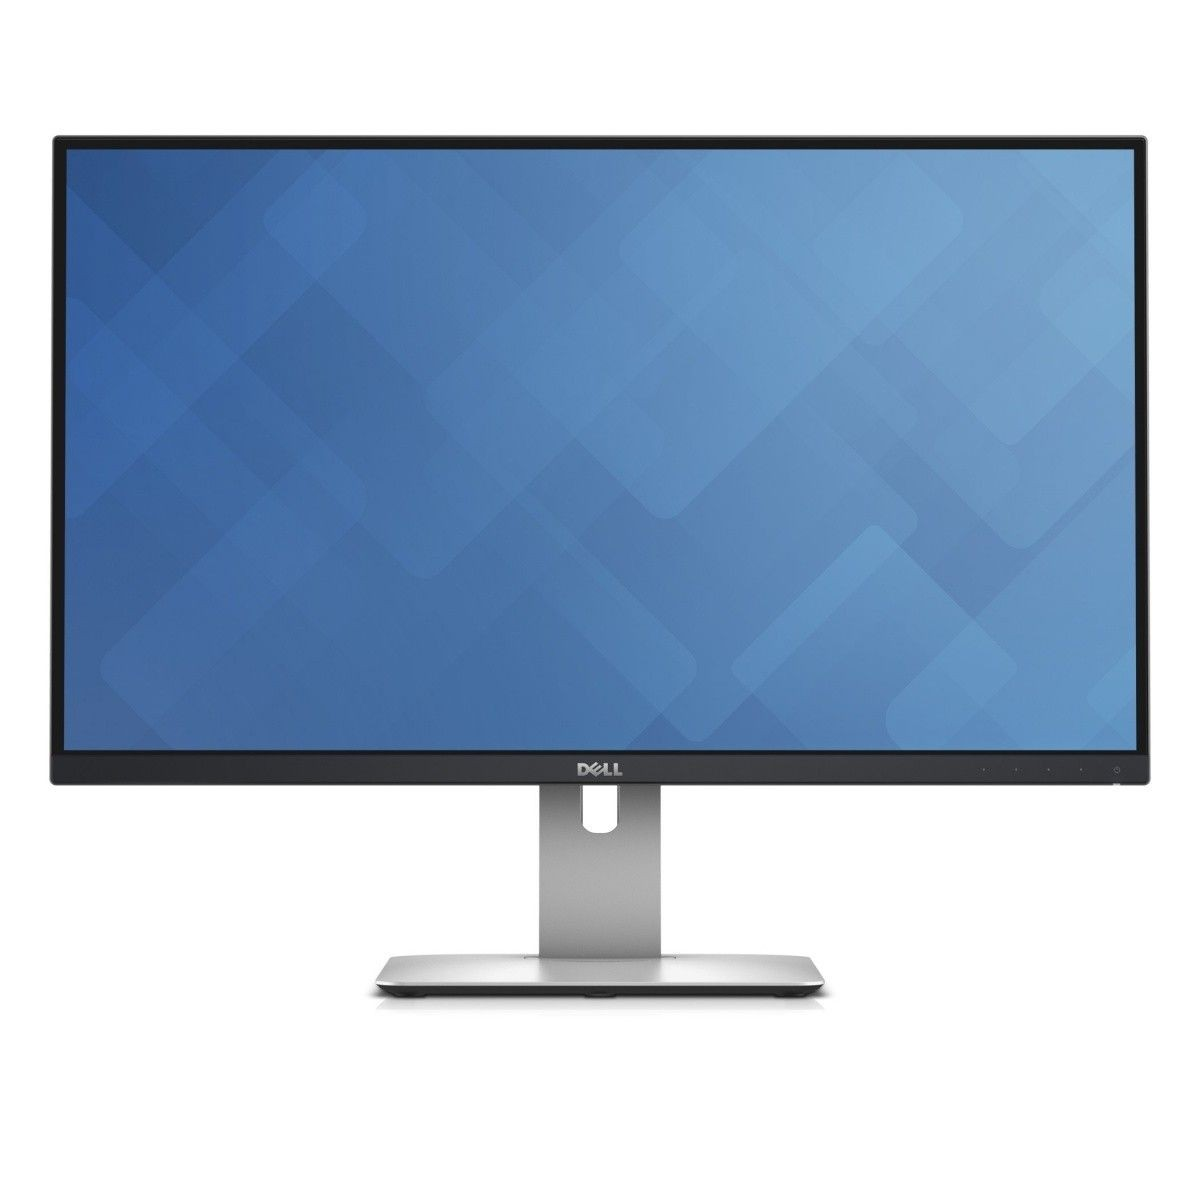 Dell 27' UltraSharp U2715H LED IPS/16:9/2560x1440/2xHDMI/mDP/DP/6xUSB 3.0/3 Y